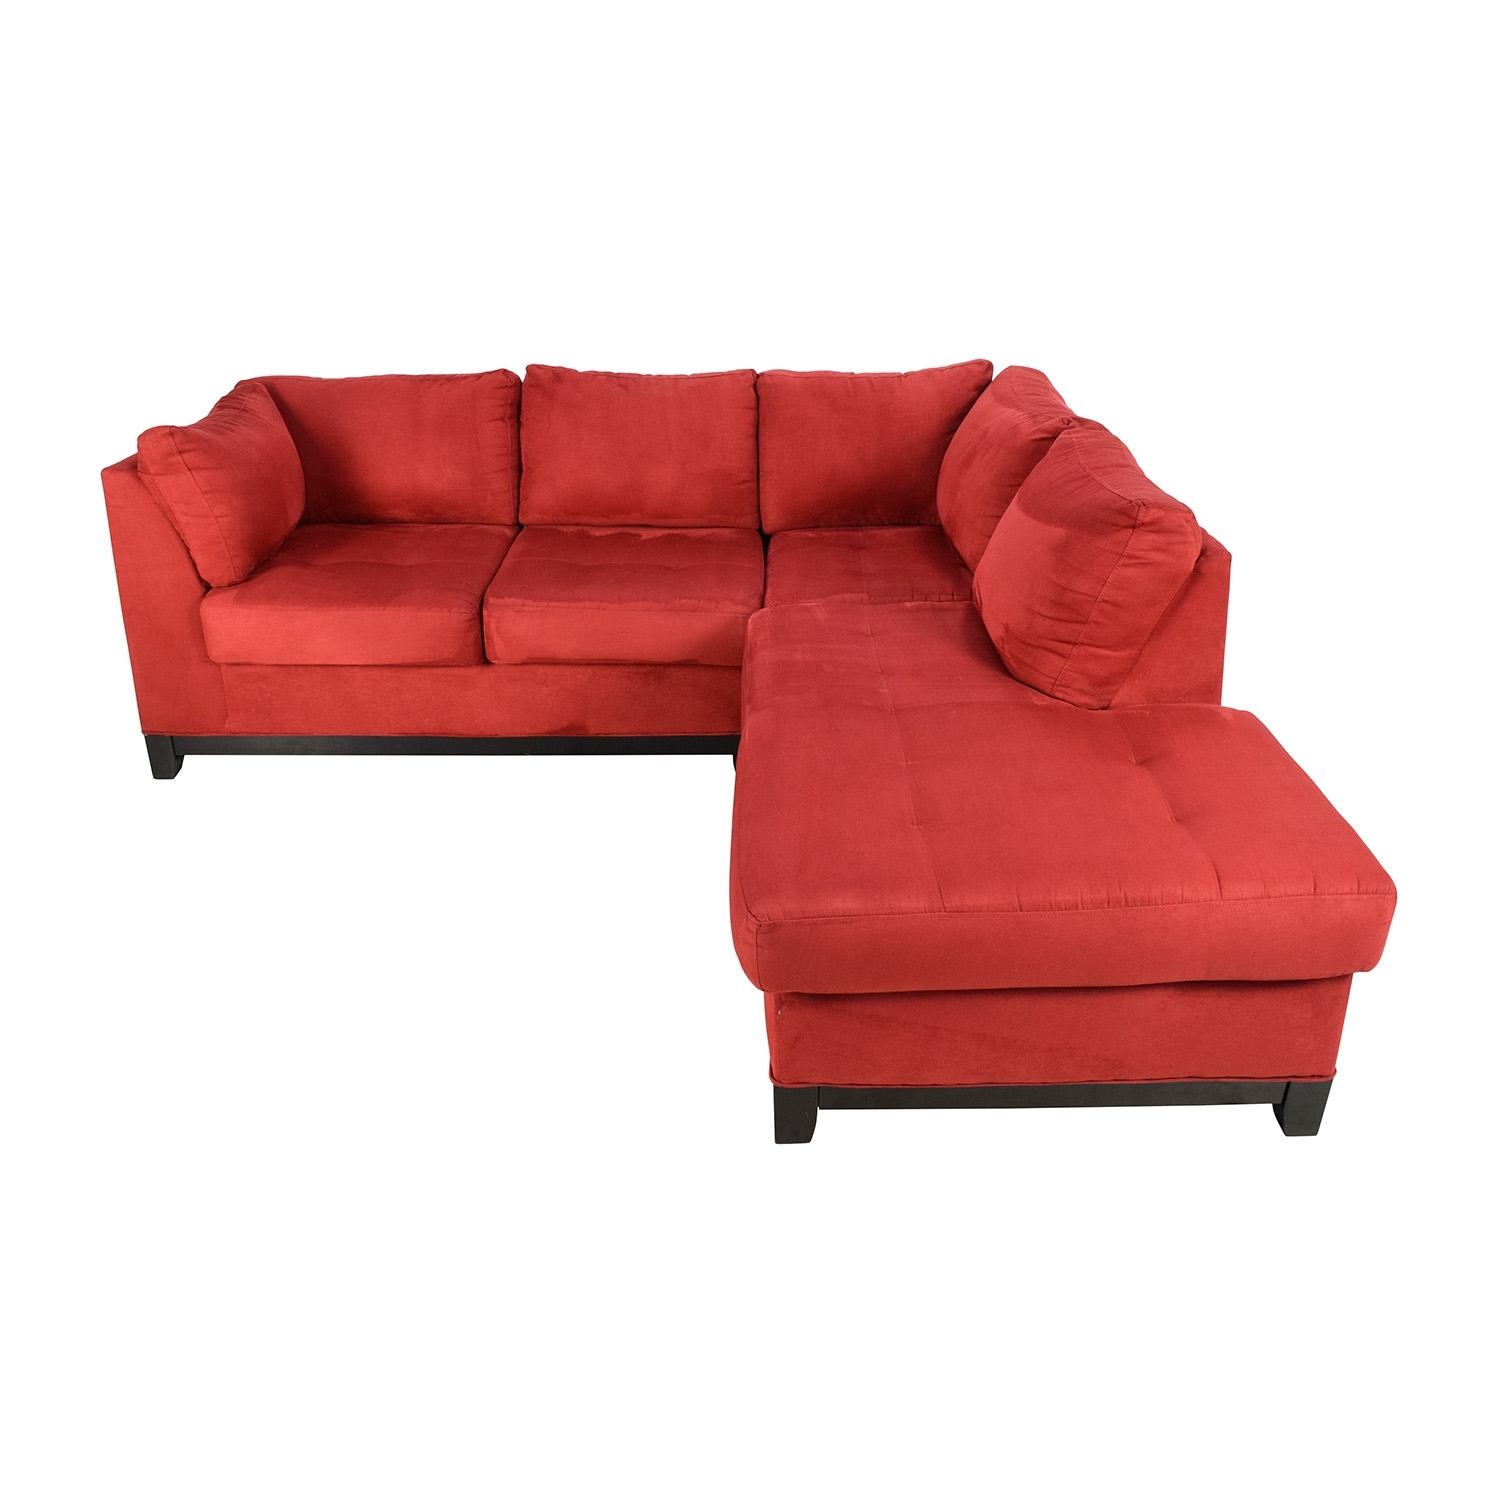 67% Off – Raymour And Flanigan Raymour & Flanigan Zella Red In Sectional Sofas At Raymour And Flanigan (View 6 of 10)